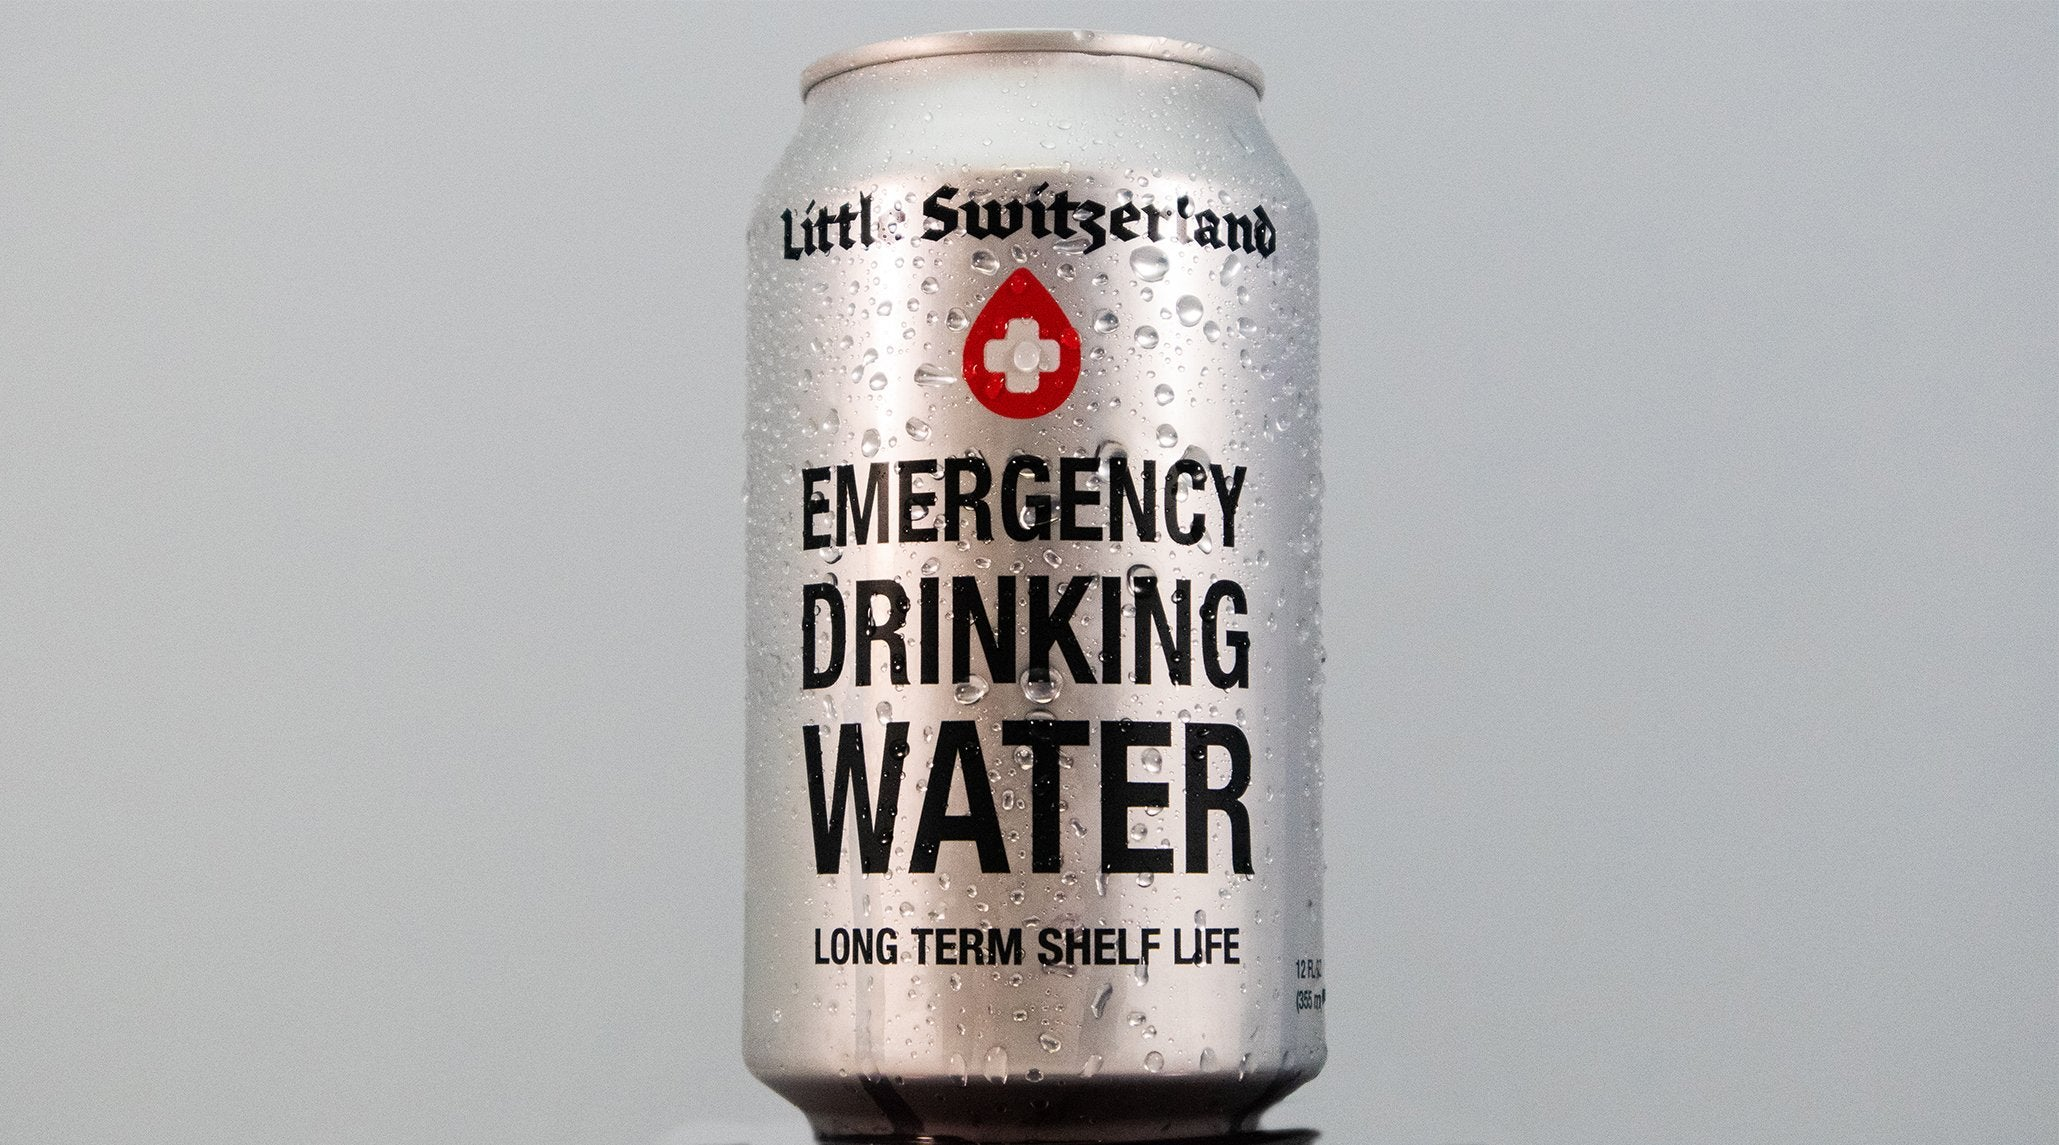 Emergency Water (24 12oz Cans) - Little Switzerland Water - canned water - emergency water - plastic bottle alternative